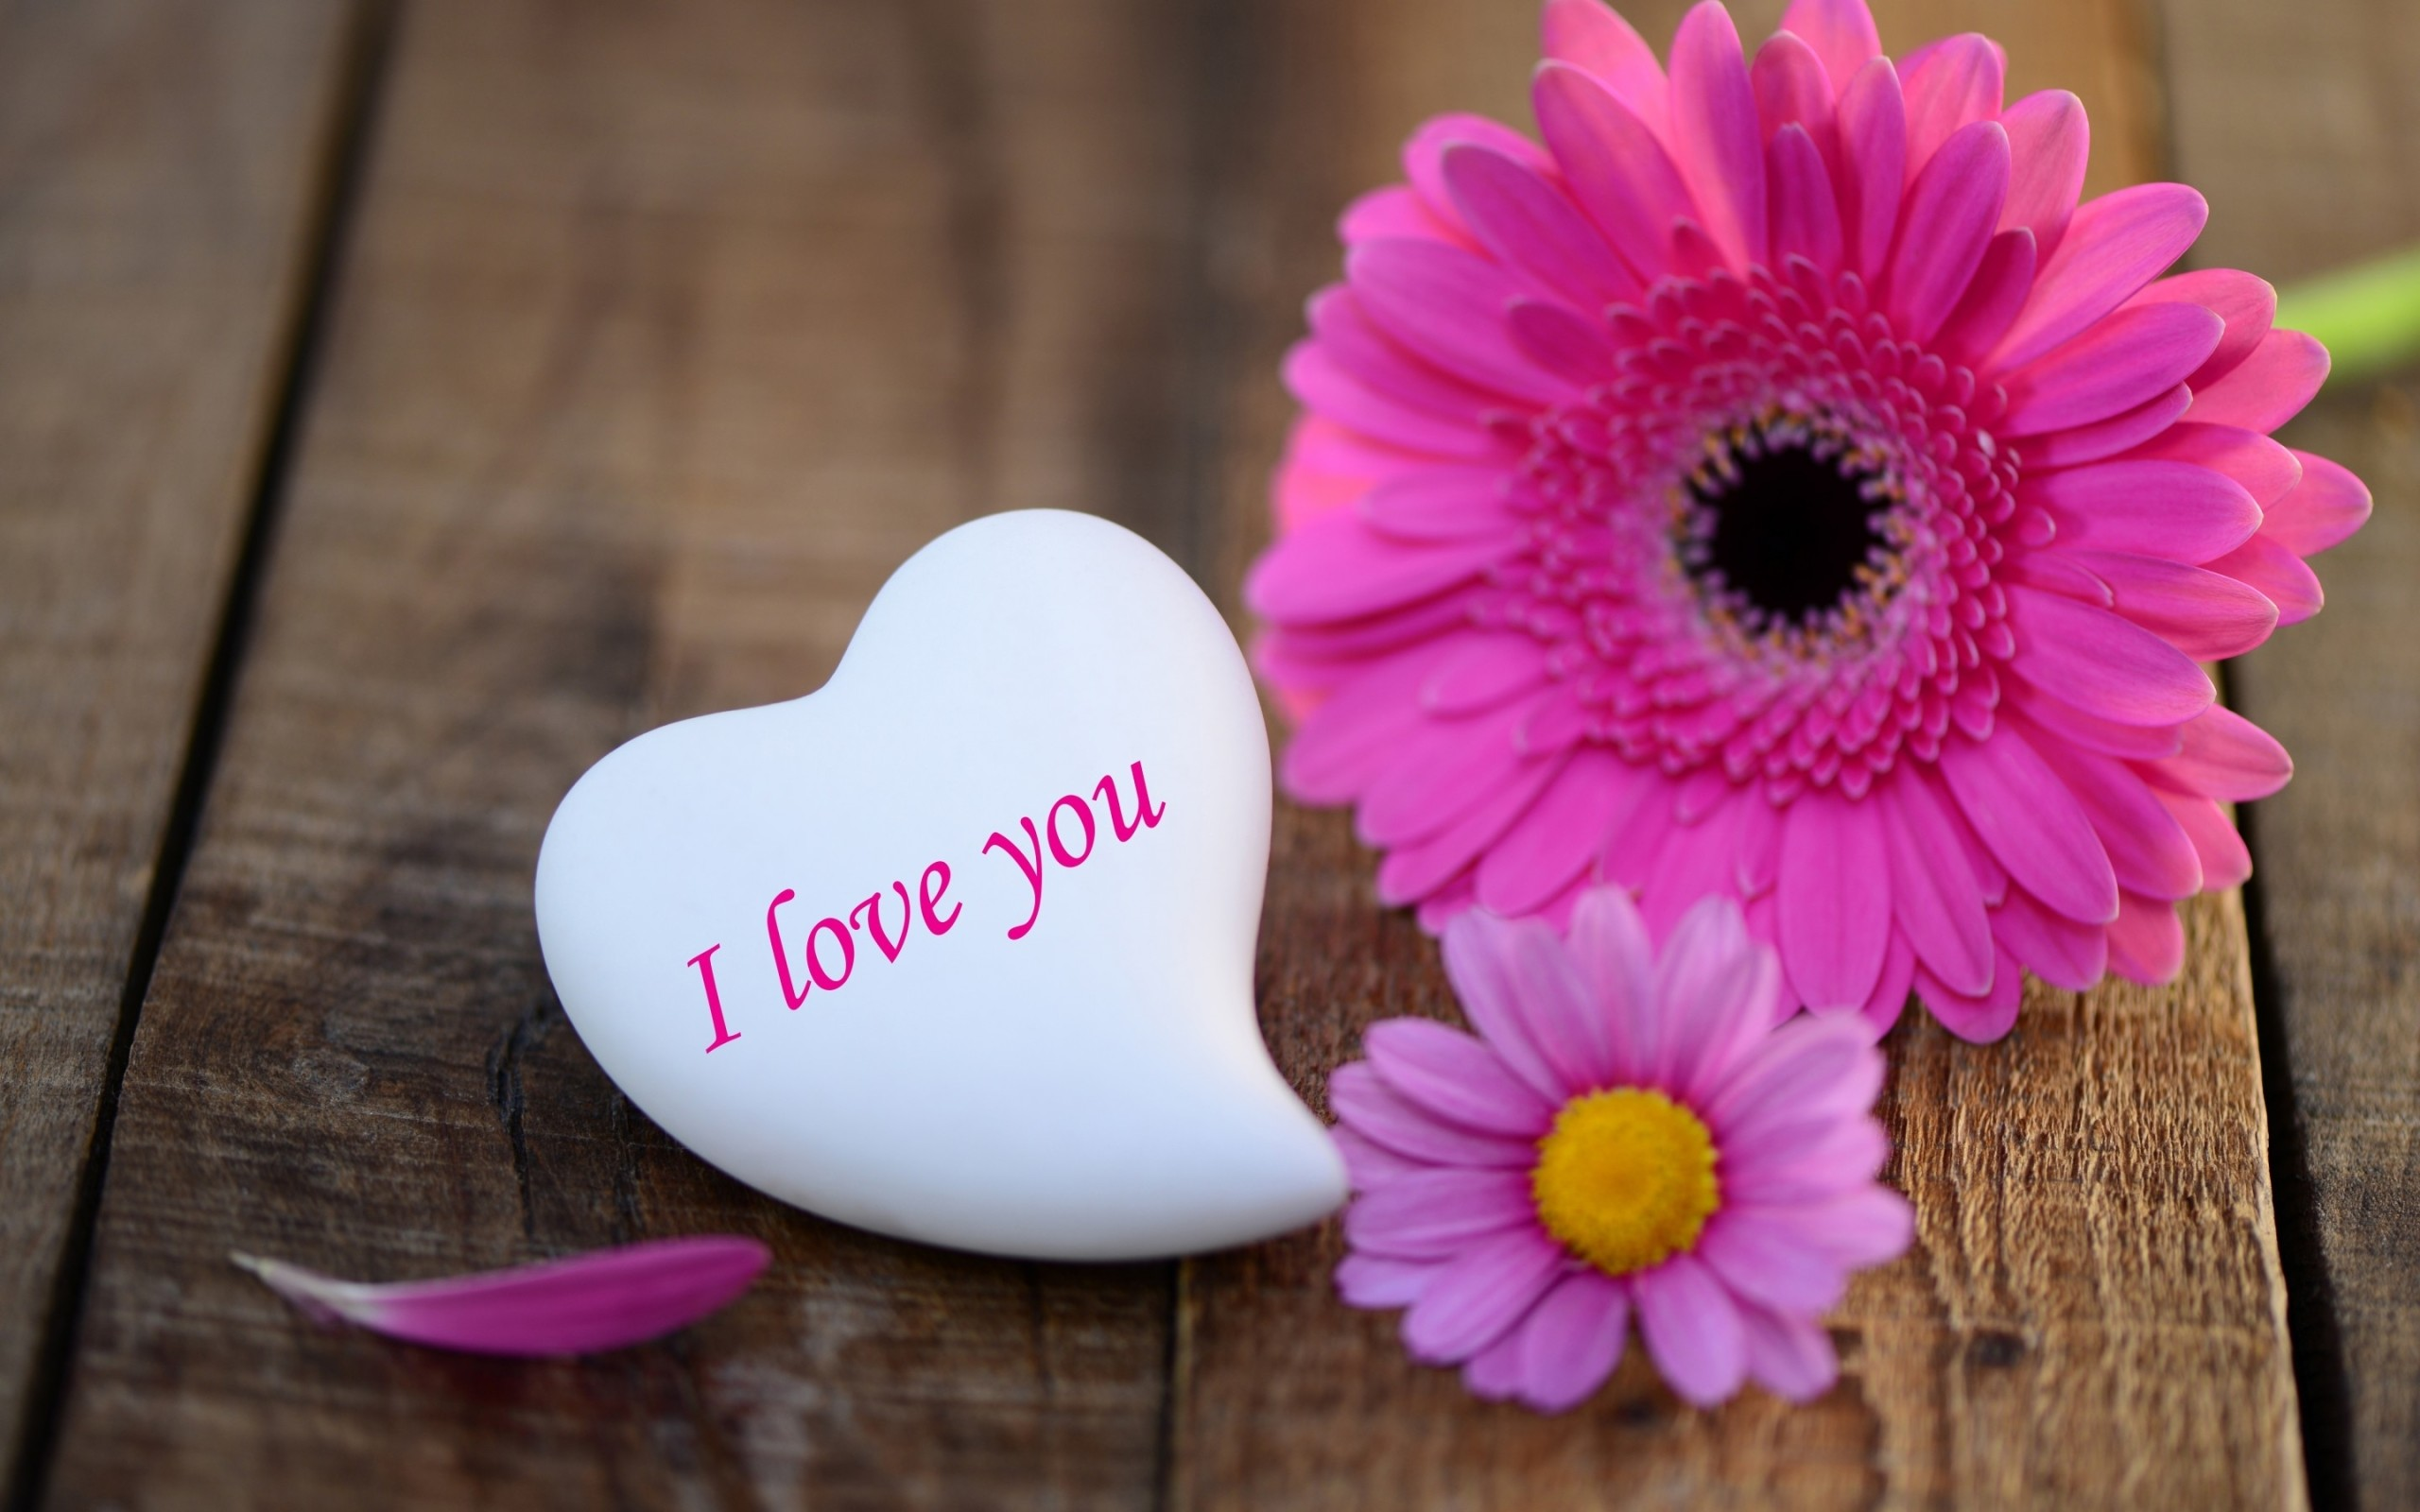 2560x1600 pink-daisies-heart-stone-i-love-you-wide- ...